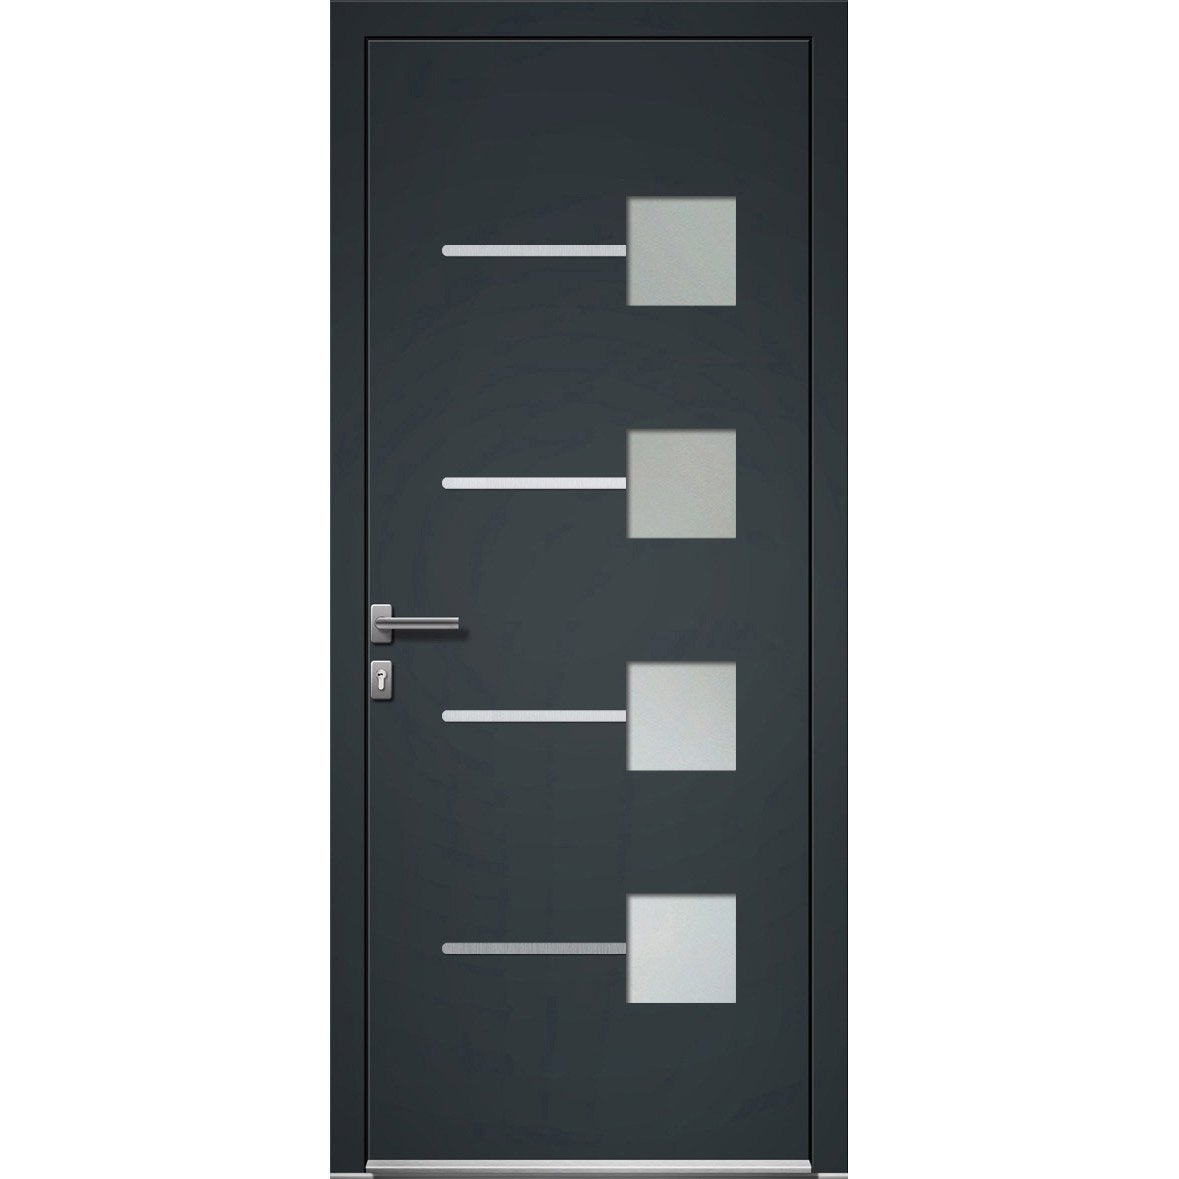 porte d 39 entr e aluminium soria artens poussant droit x cm leroy merlin. Black Bedroom Furniture Sets. Home Design Ideas